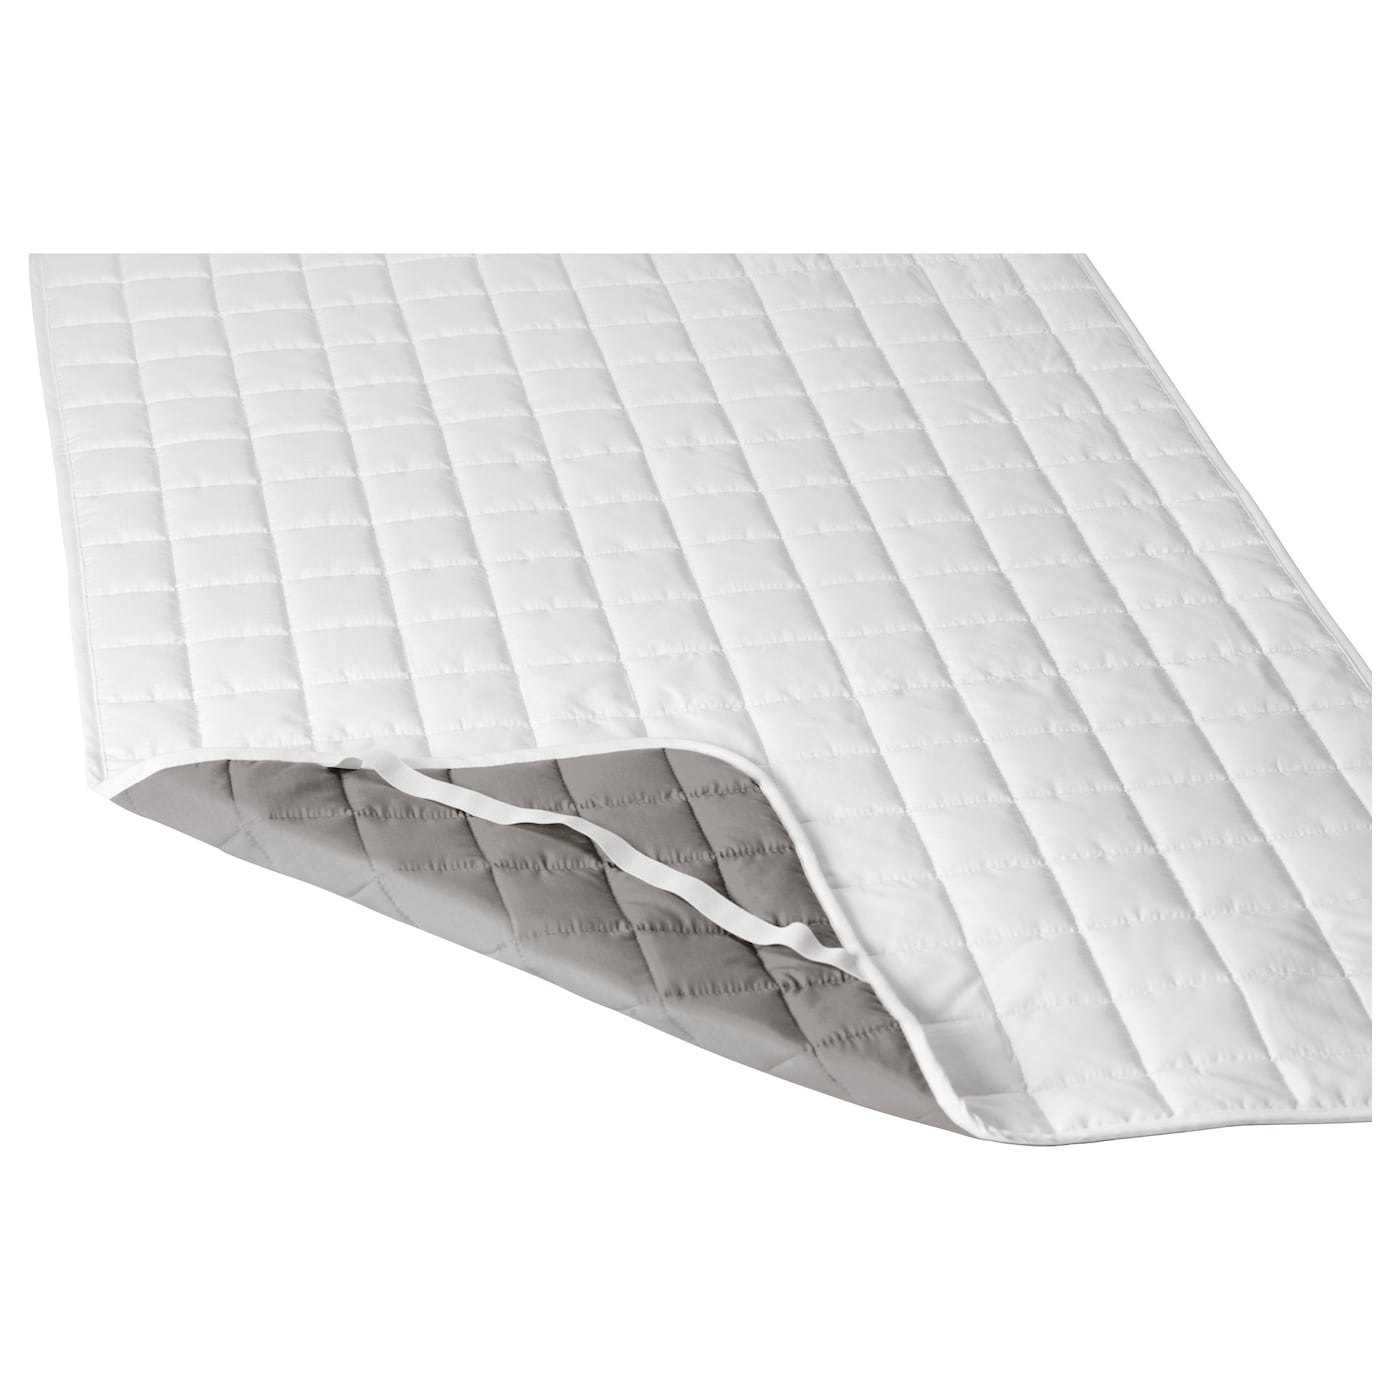 Double Bed Mattress Protector Cover